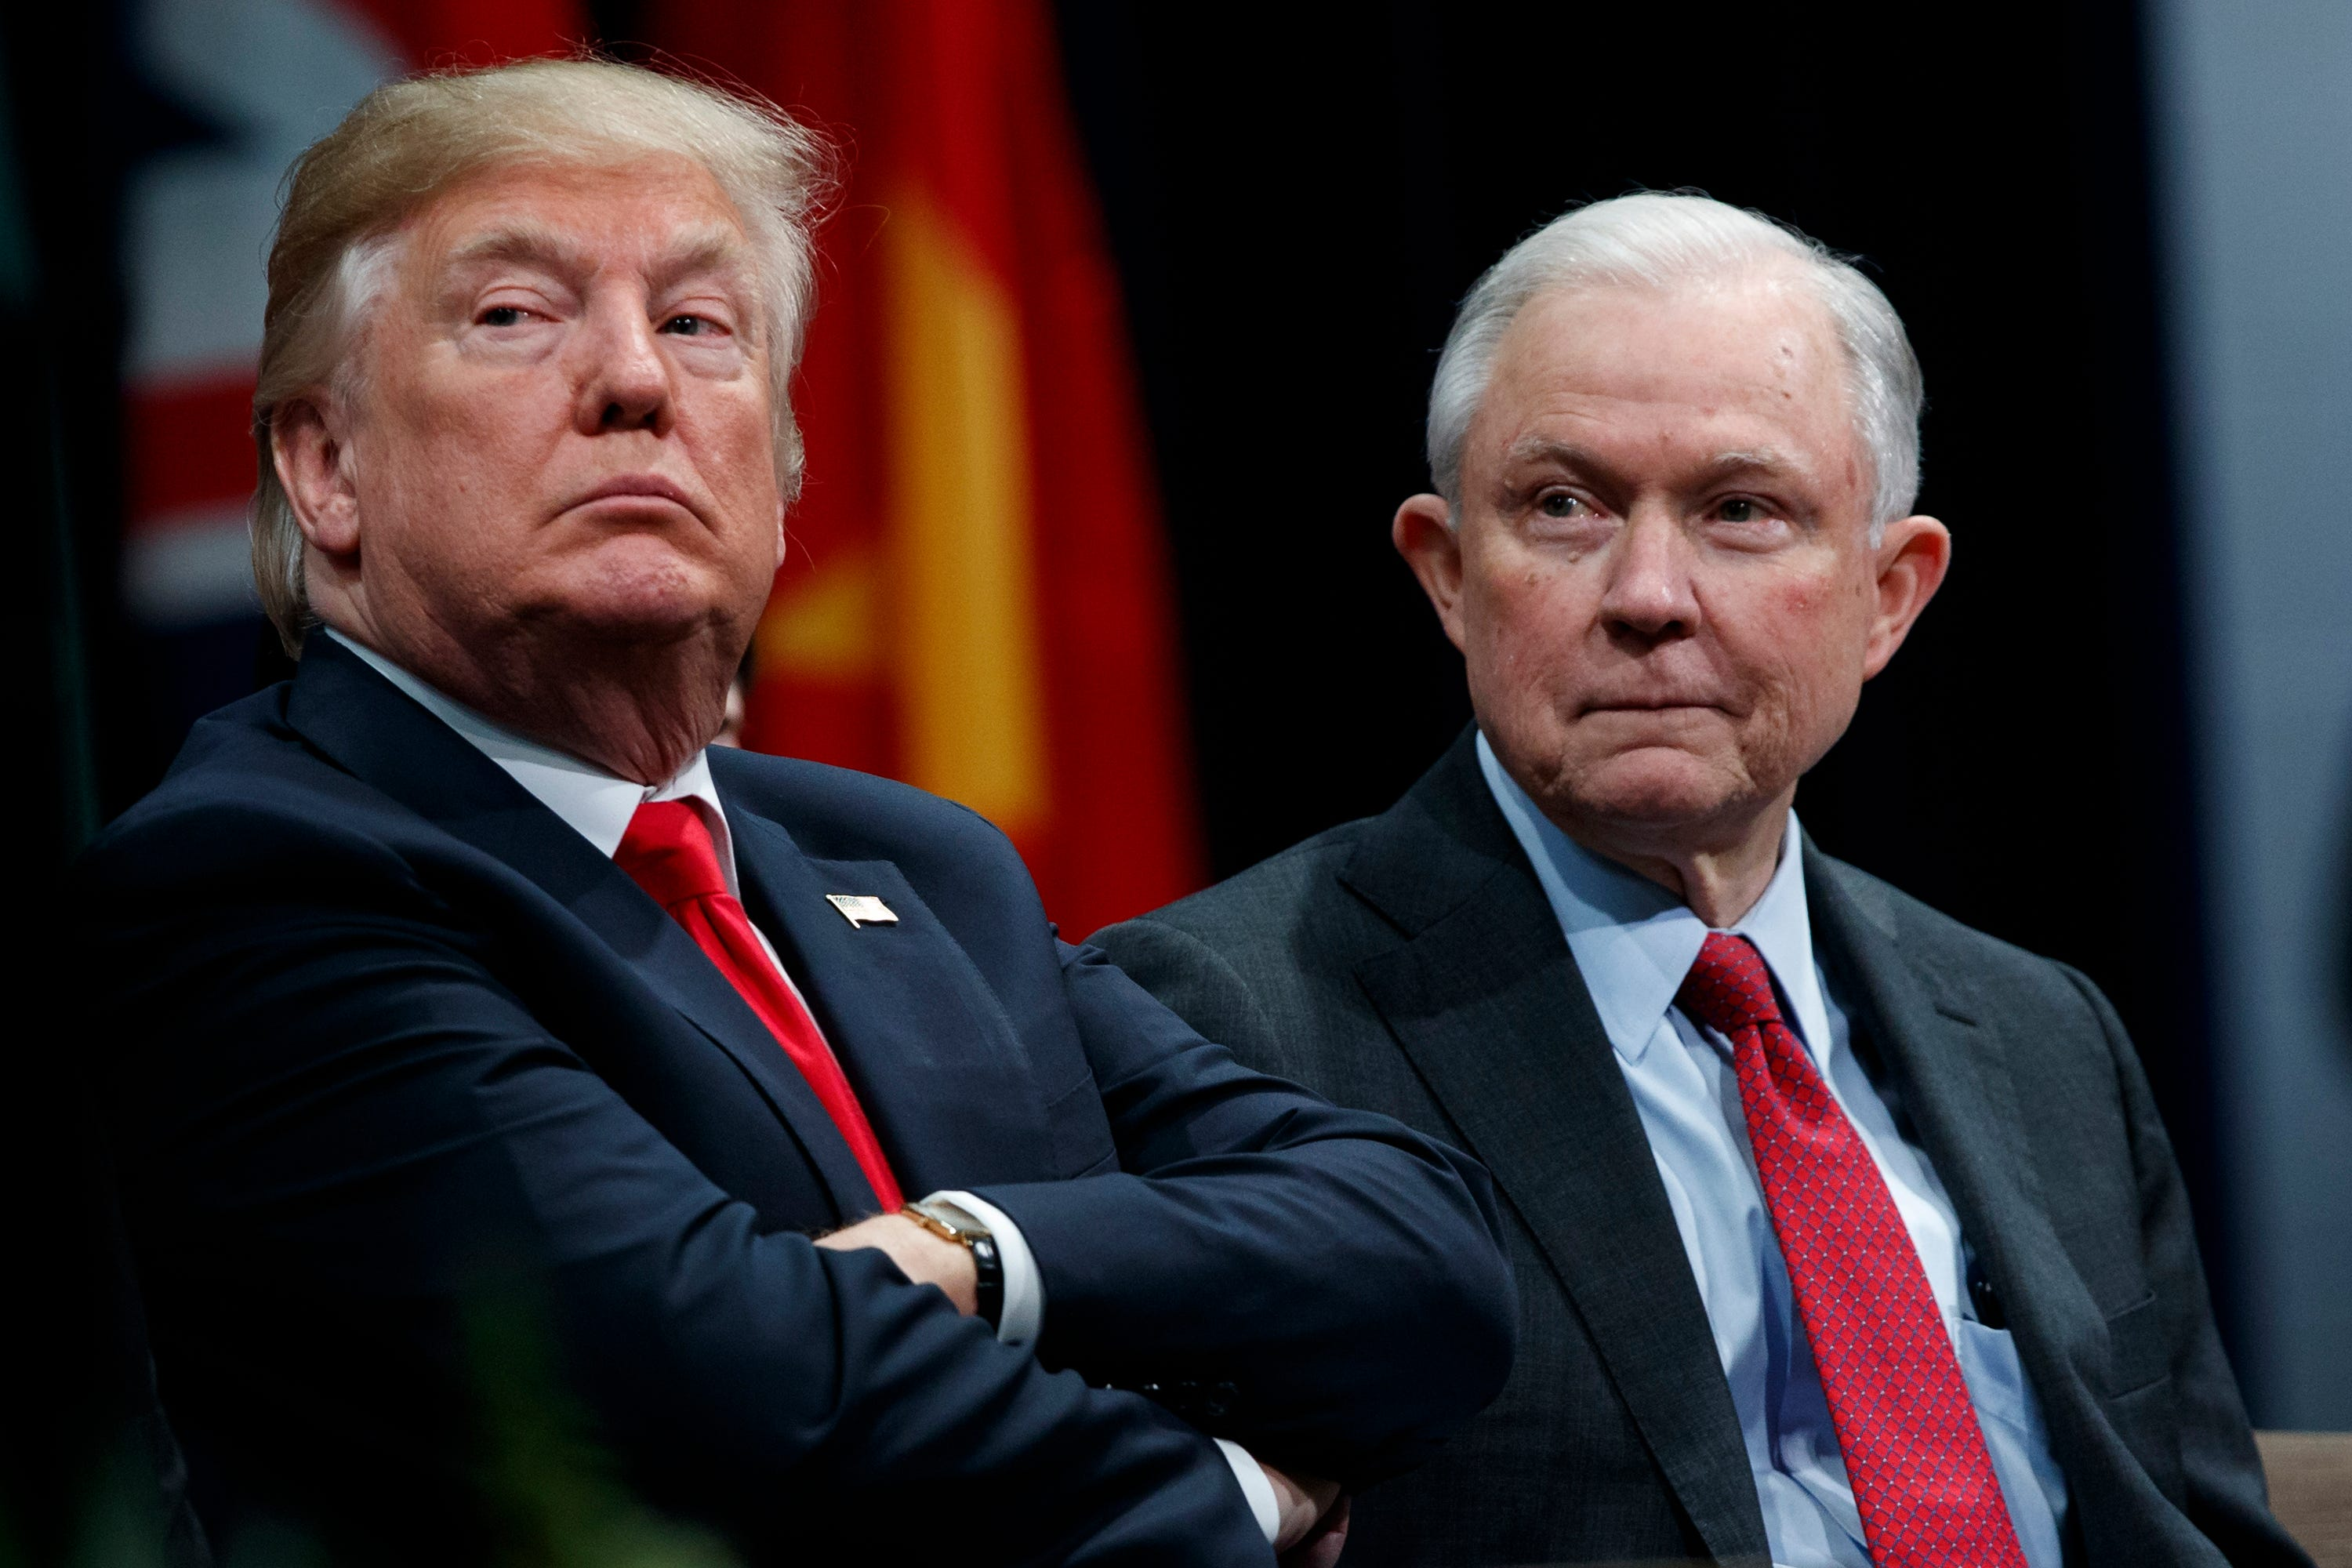 President Trump fires back at Attorney General Jeff Sessions, pleads for investigations into 'other side'